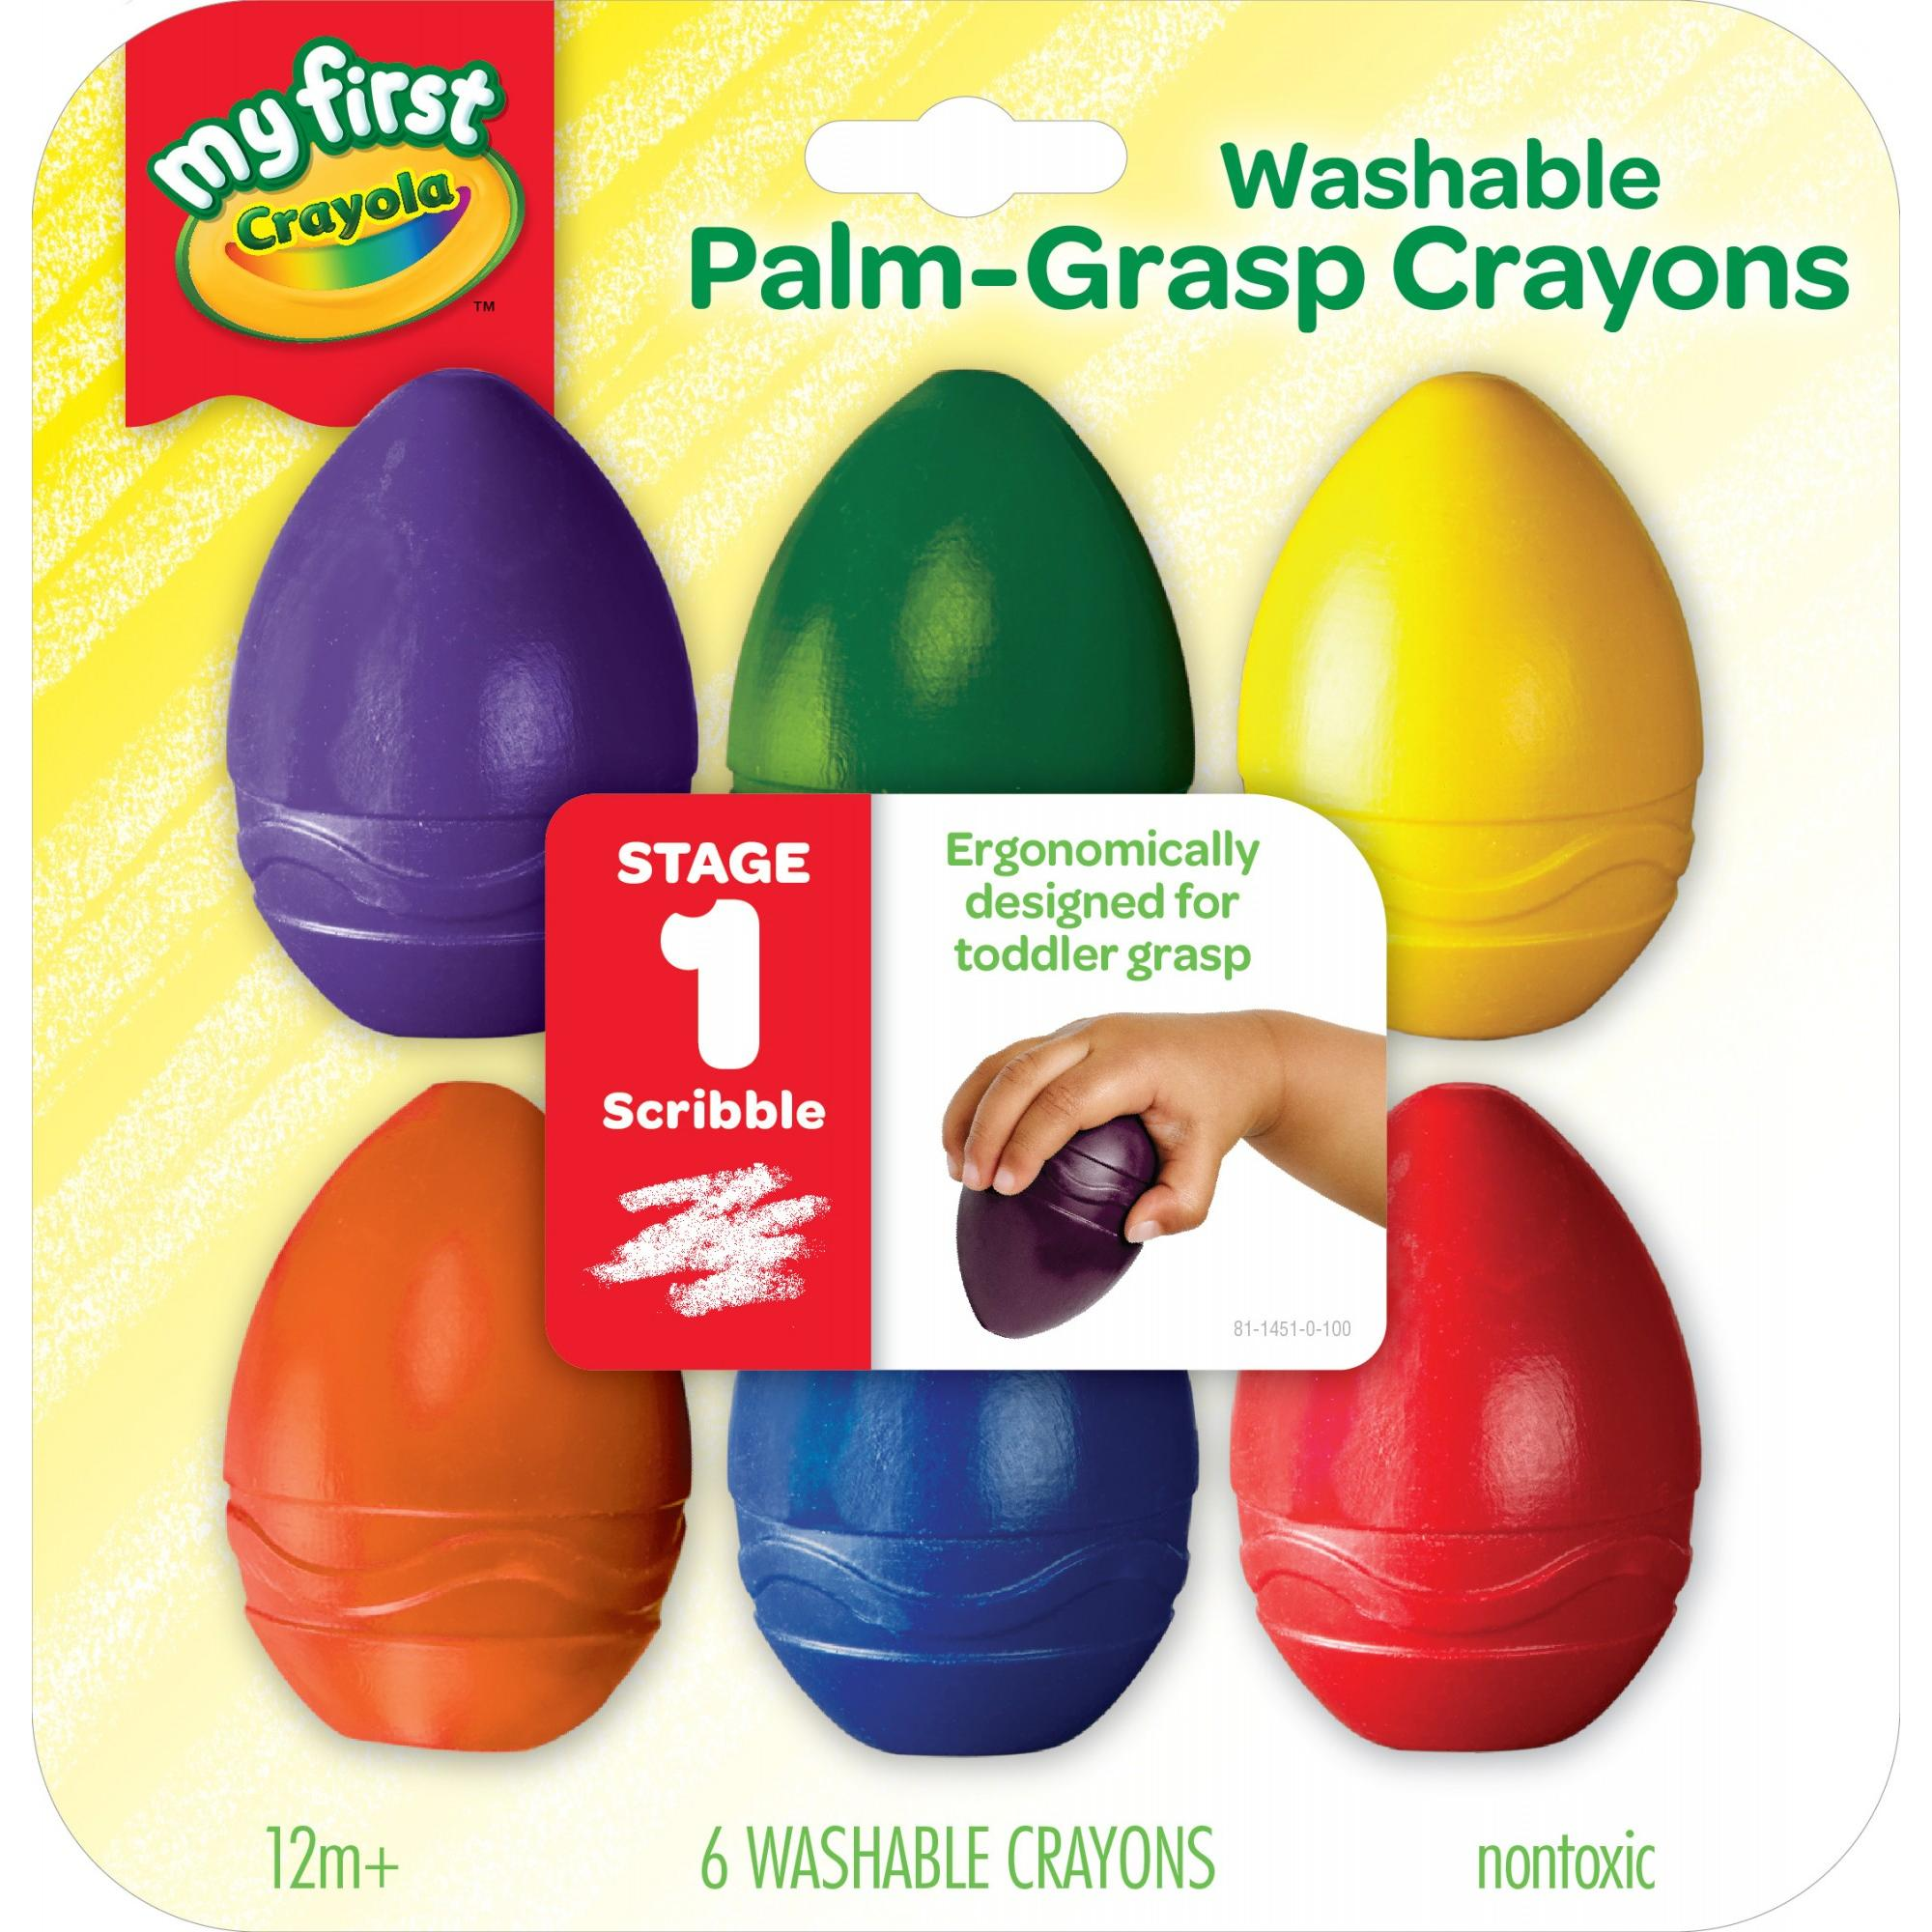 Crayola My First Washable Palm-Grasp Crayons For Toddlers, Toddler Art Supplies, 6 Count